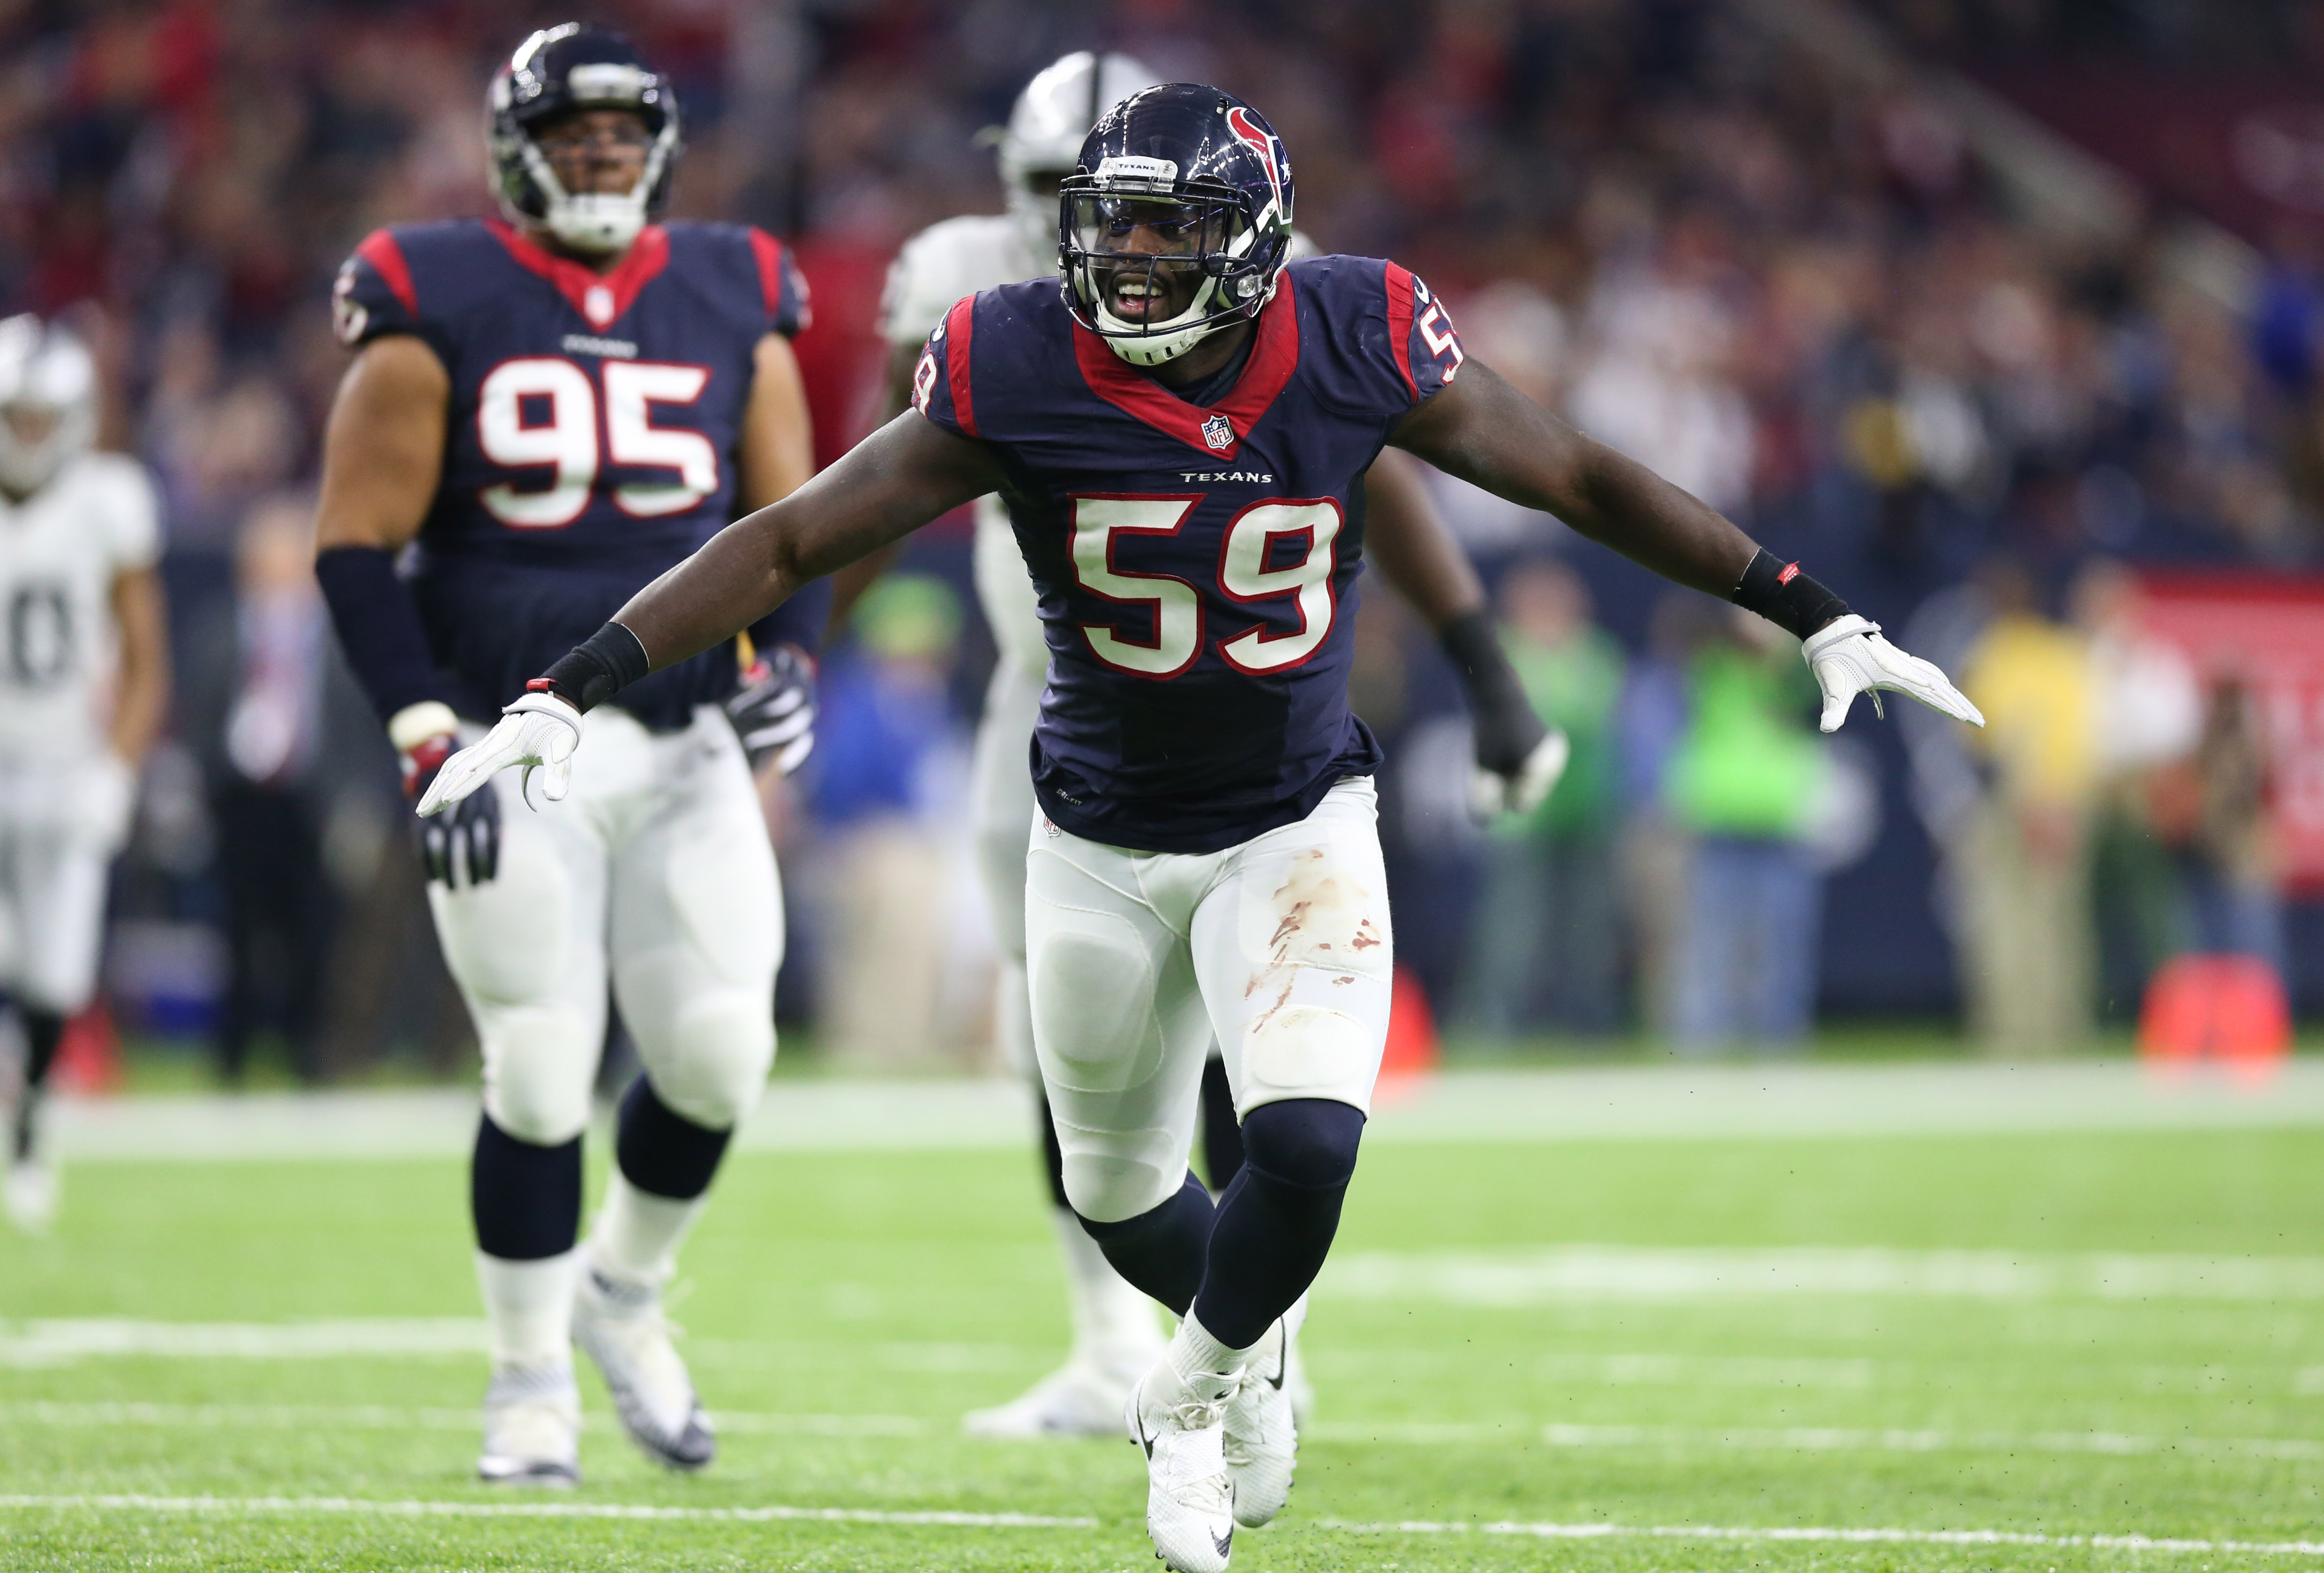 9794854-nfl-afc-wild-card-oakland-raiders-at-houston-texans